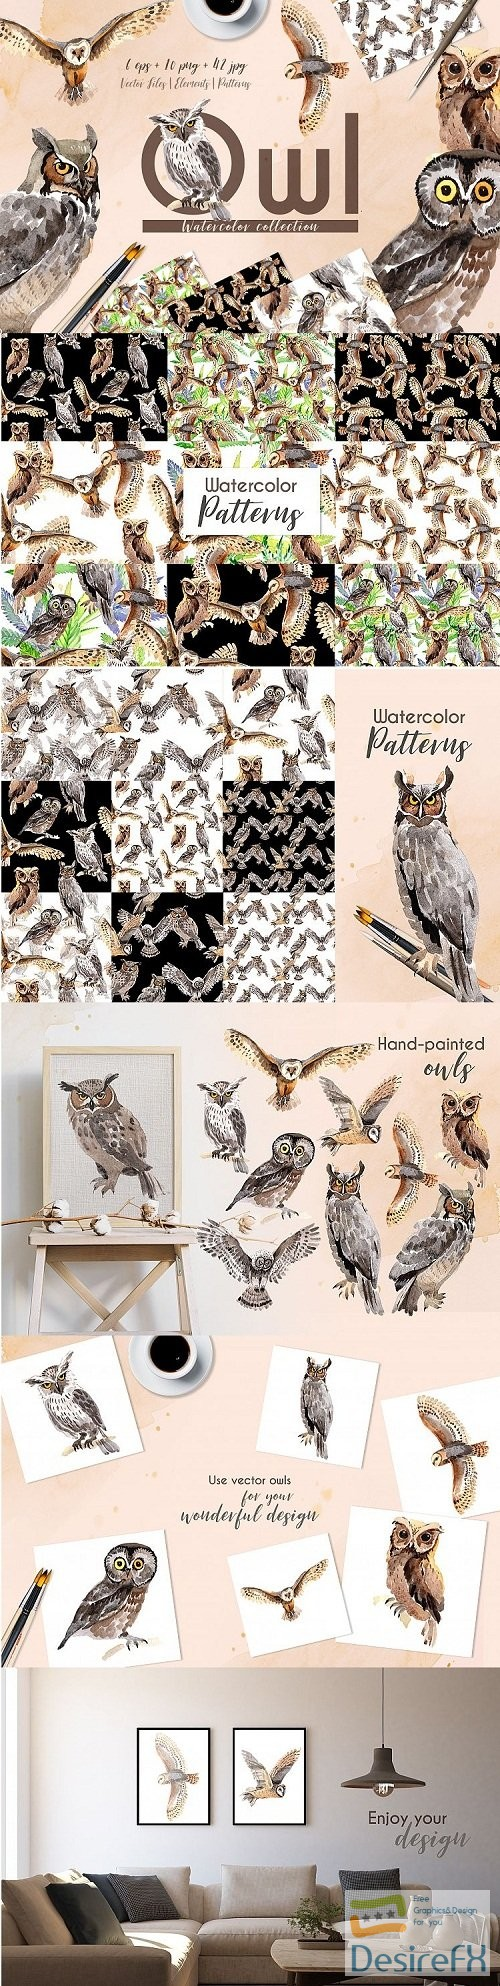 photoshop - Owl Watercolor png - 213376